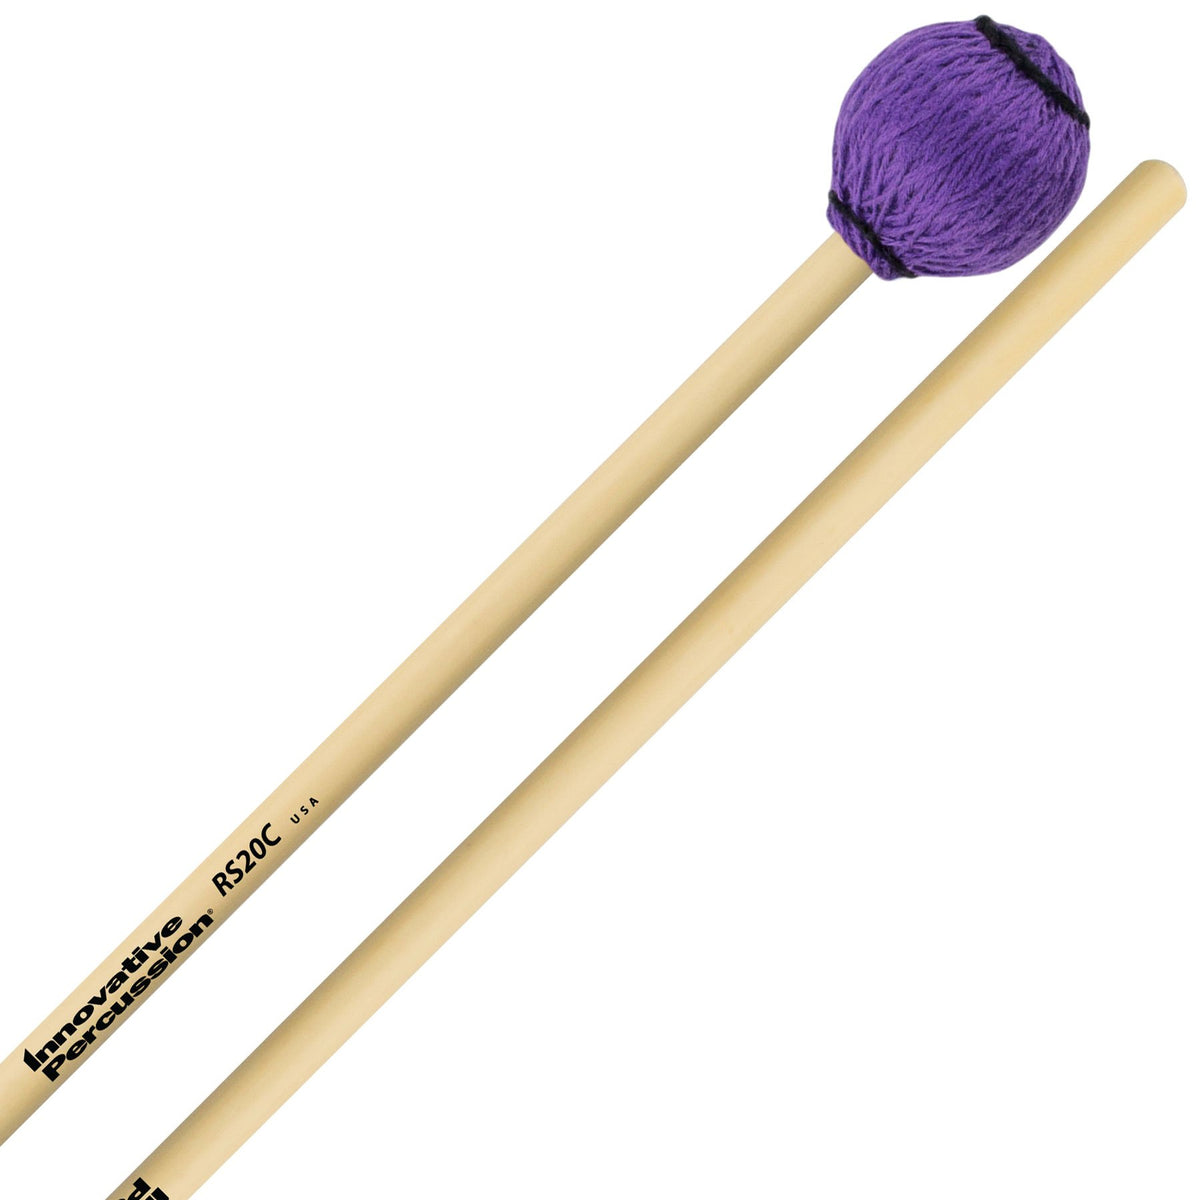 Innovative Percussion - Rattan Series Concert Vibraphone/Marimba Mallets-Percussion-Innovative Percussion-RS20C Medium-Music Elements